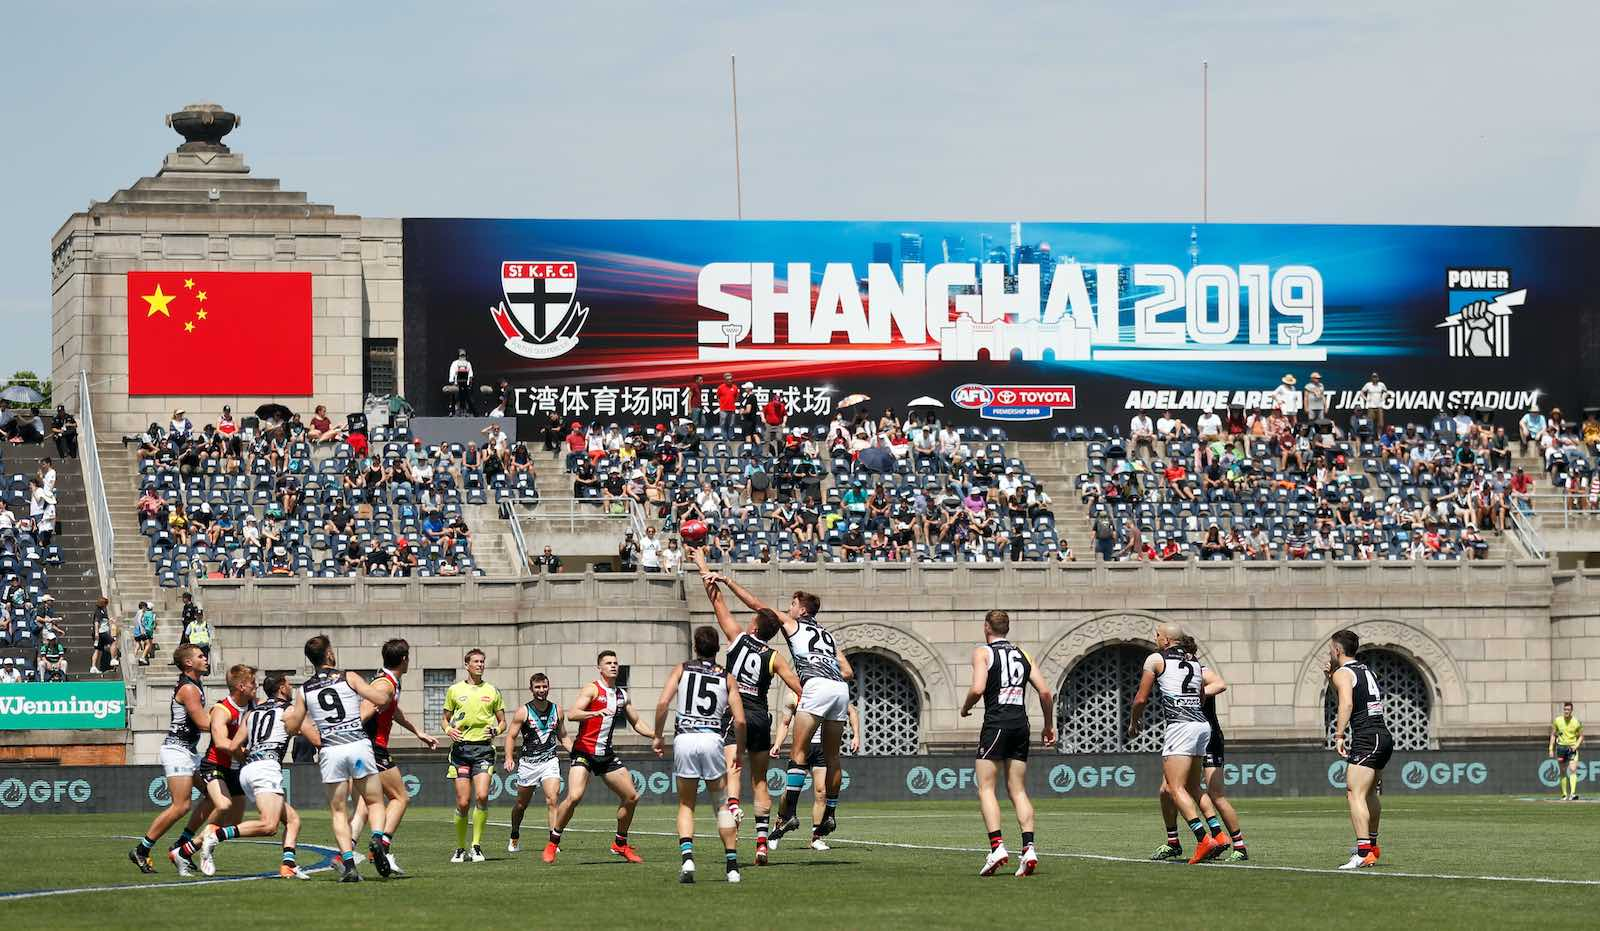 The 2 June 2019 AFL round 11 match between the St Kilda Saints and the Port Adelaide Power at Jiangwan Stadium, Shanghai, China (Michael Willson/AFL Photos via Getty Images)